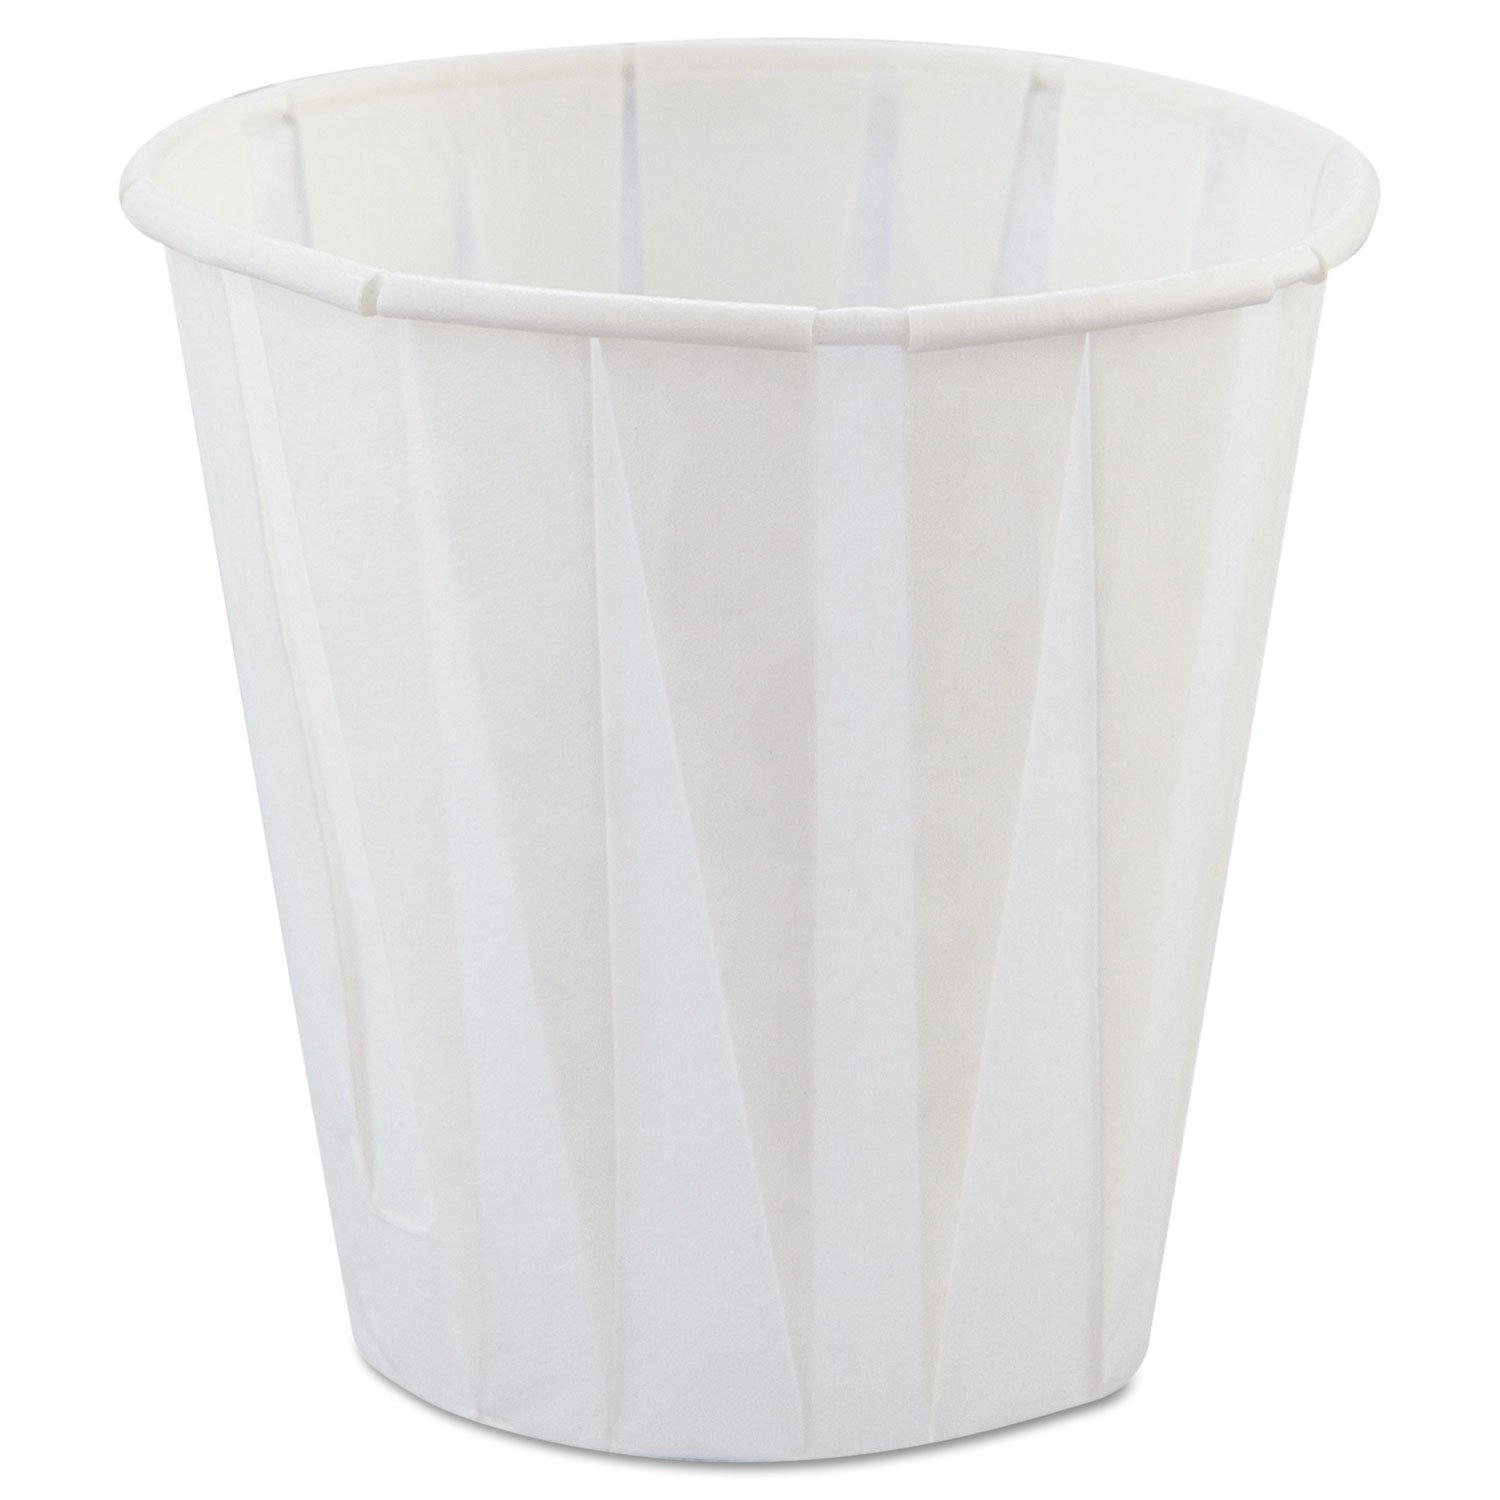 Genpak Harvest Paper Pleated Water Cup, 3.5 Ounce - 2500 per case.